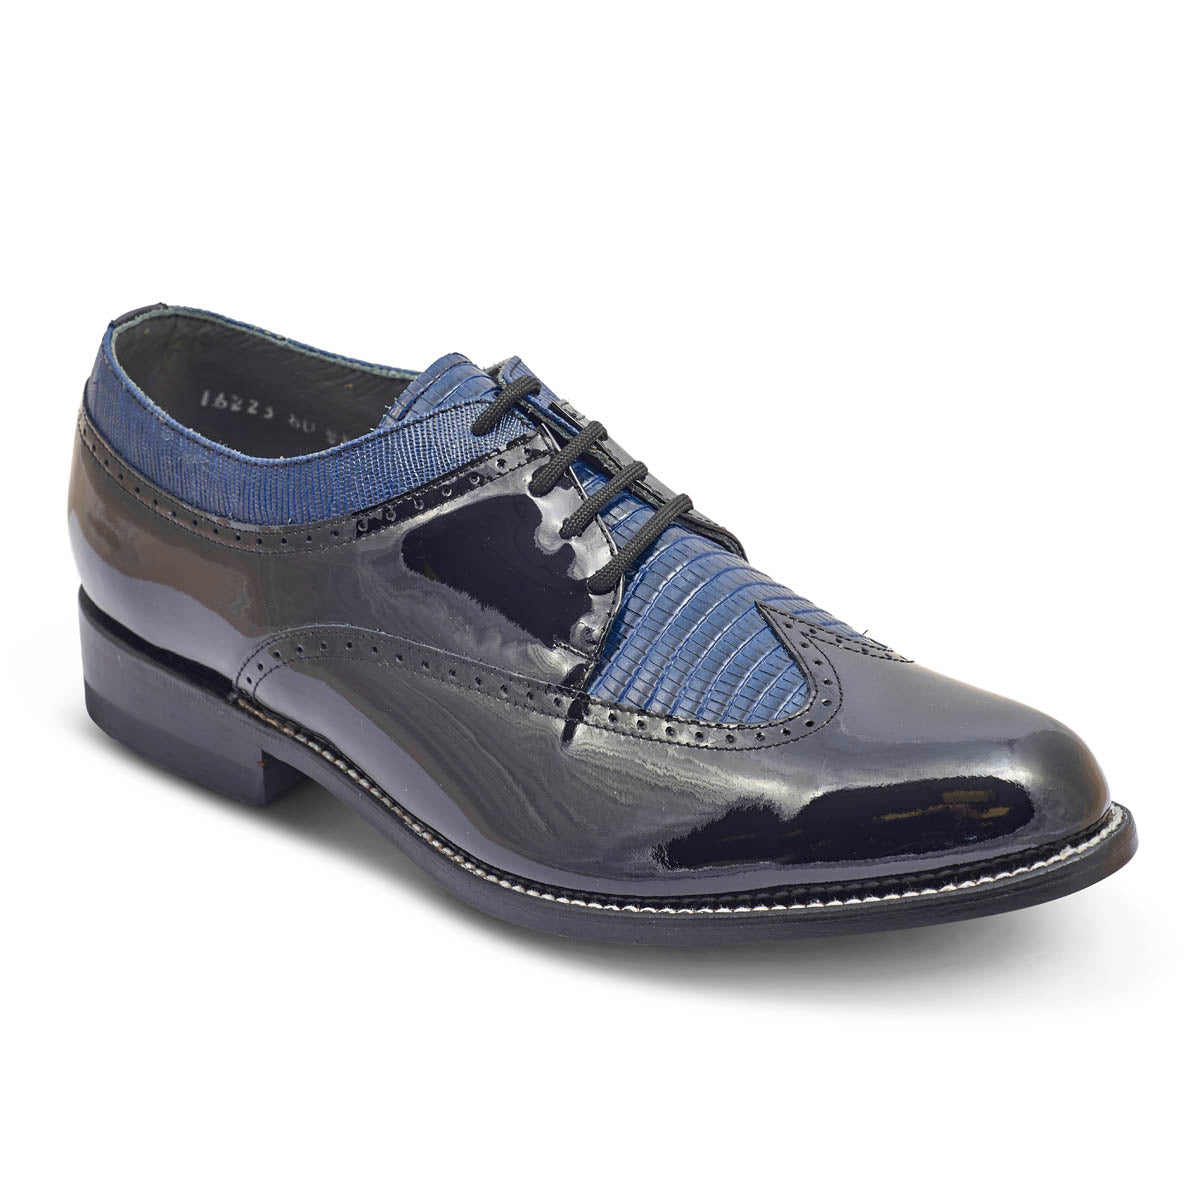 STACY PENNER - Black/Blue Wing Tip (C1608)